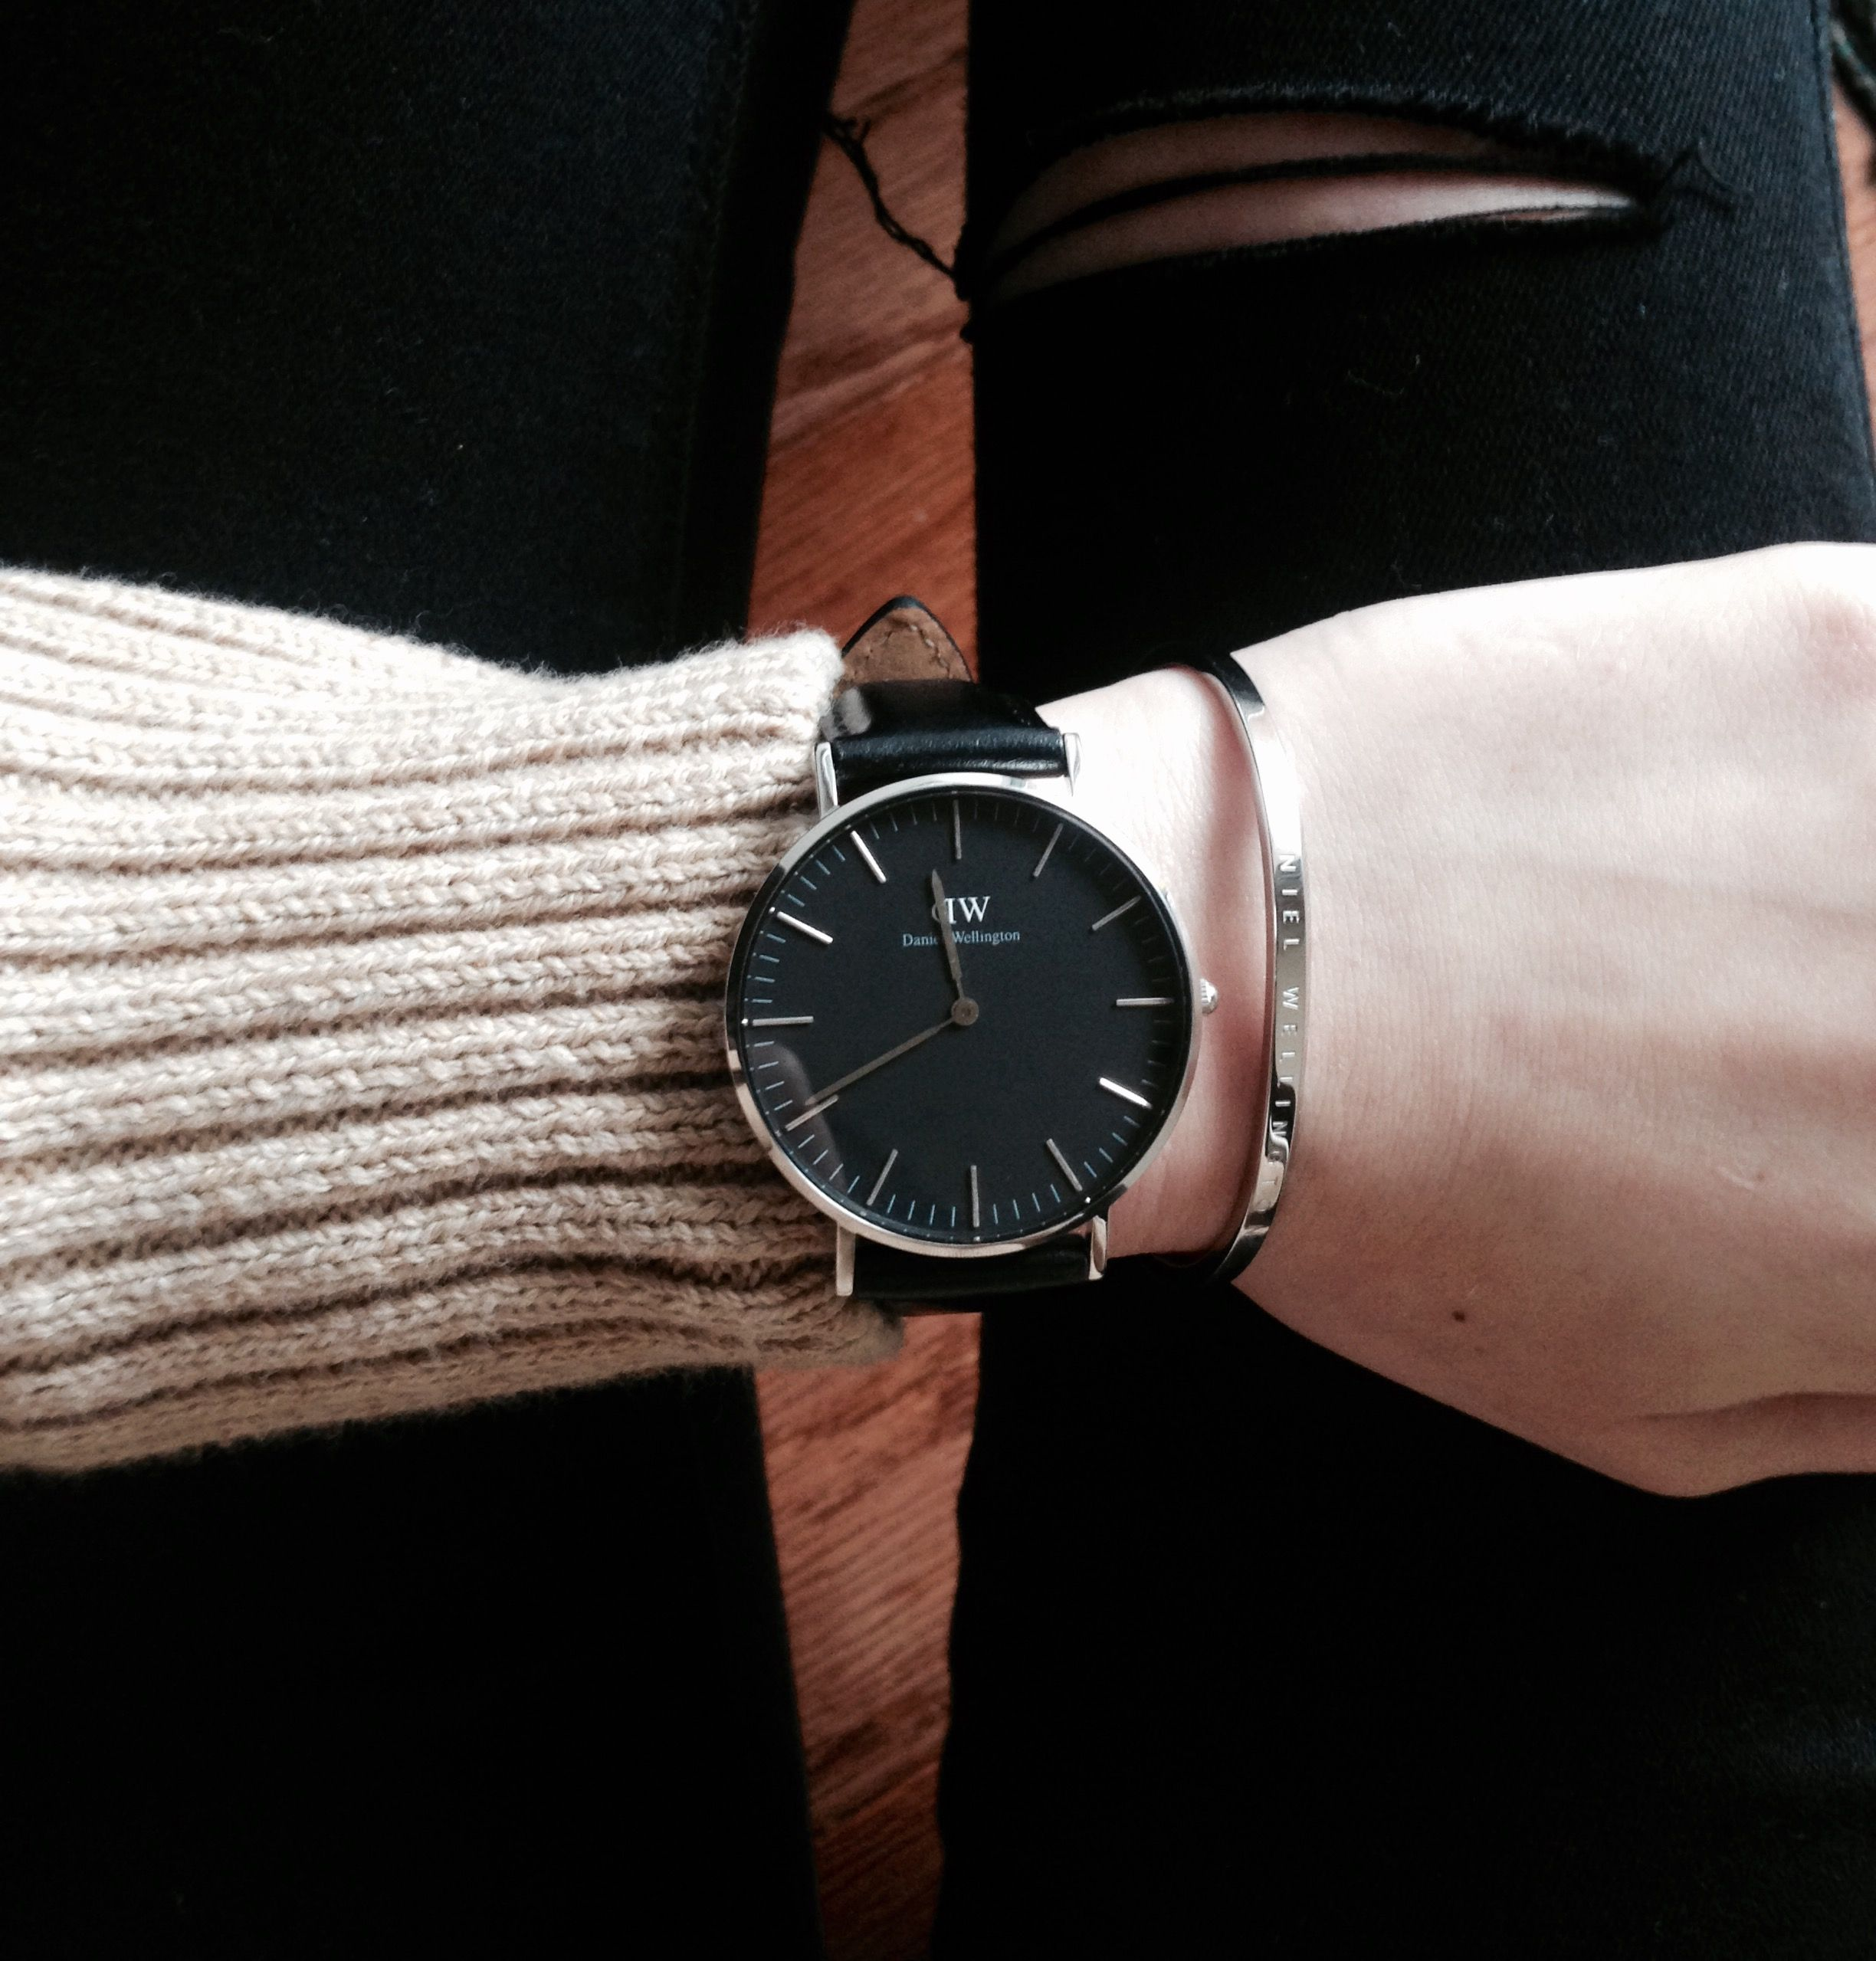 f84698065e70 My beautiful Daniel Wellington watch and cuff arrived today! The design is  gorgeous and goes